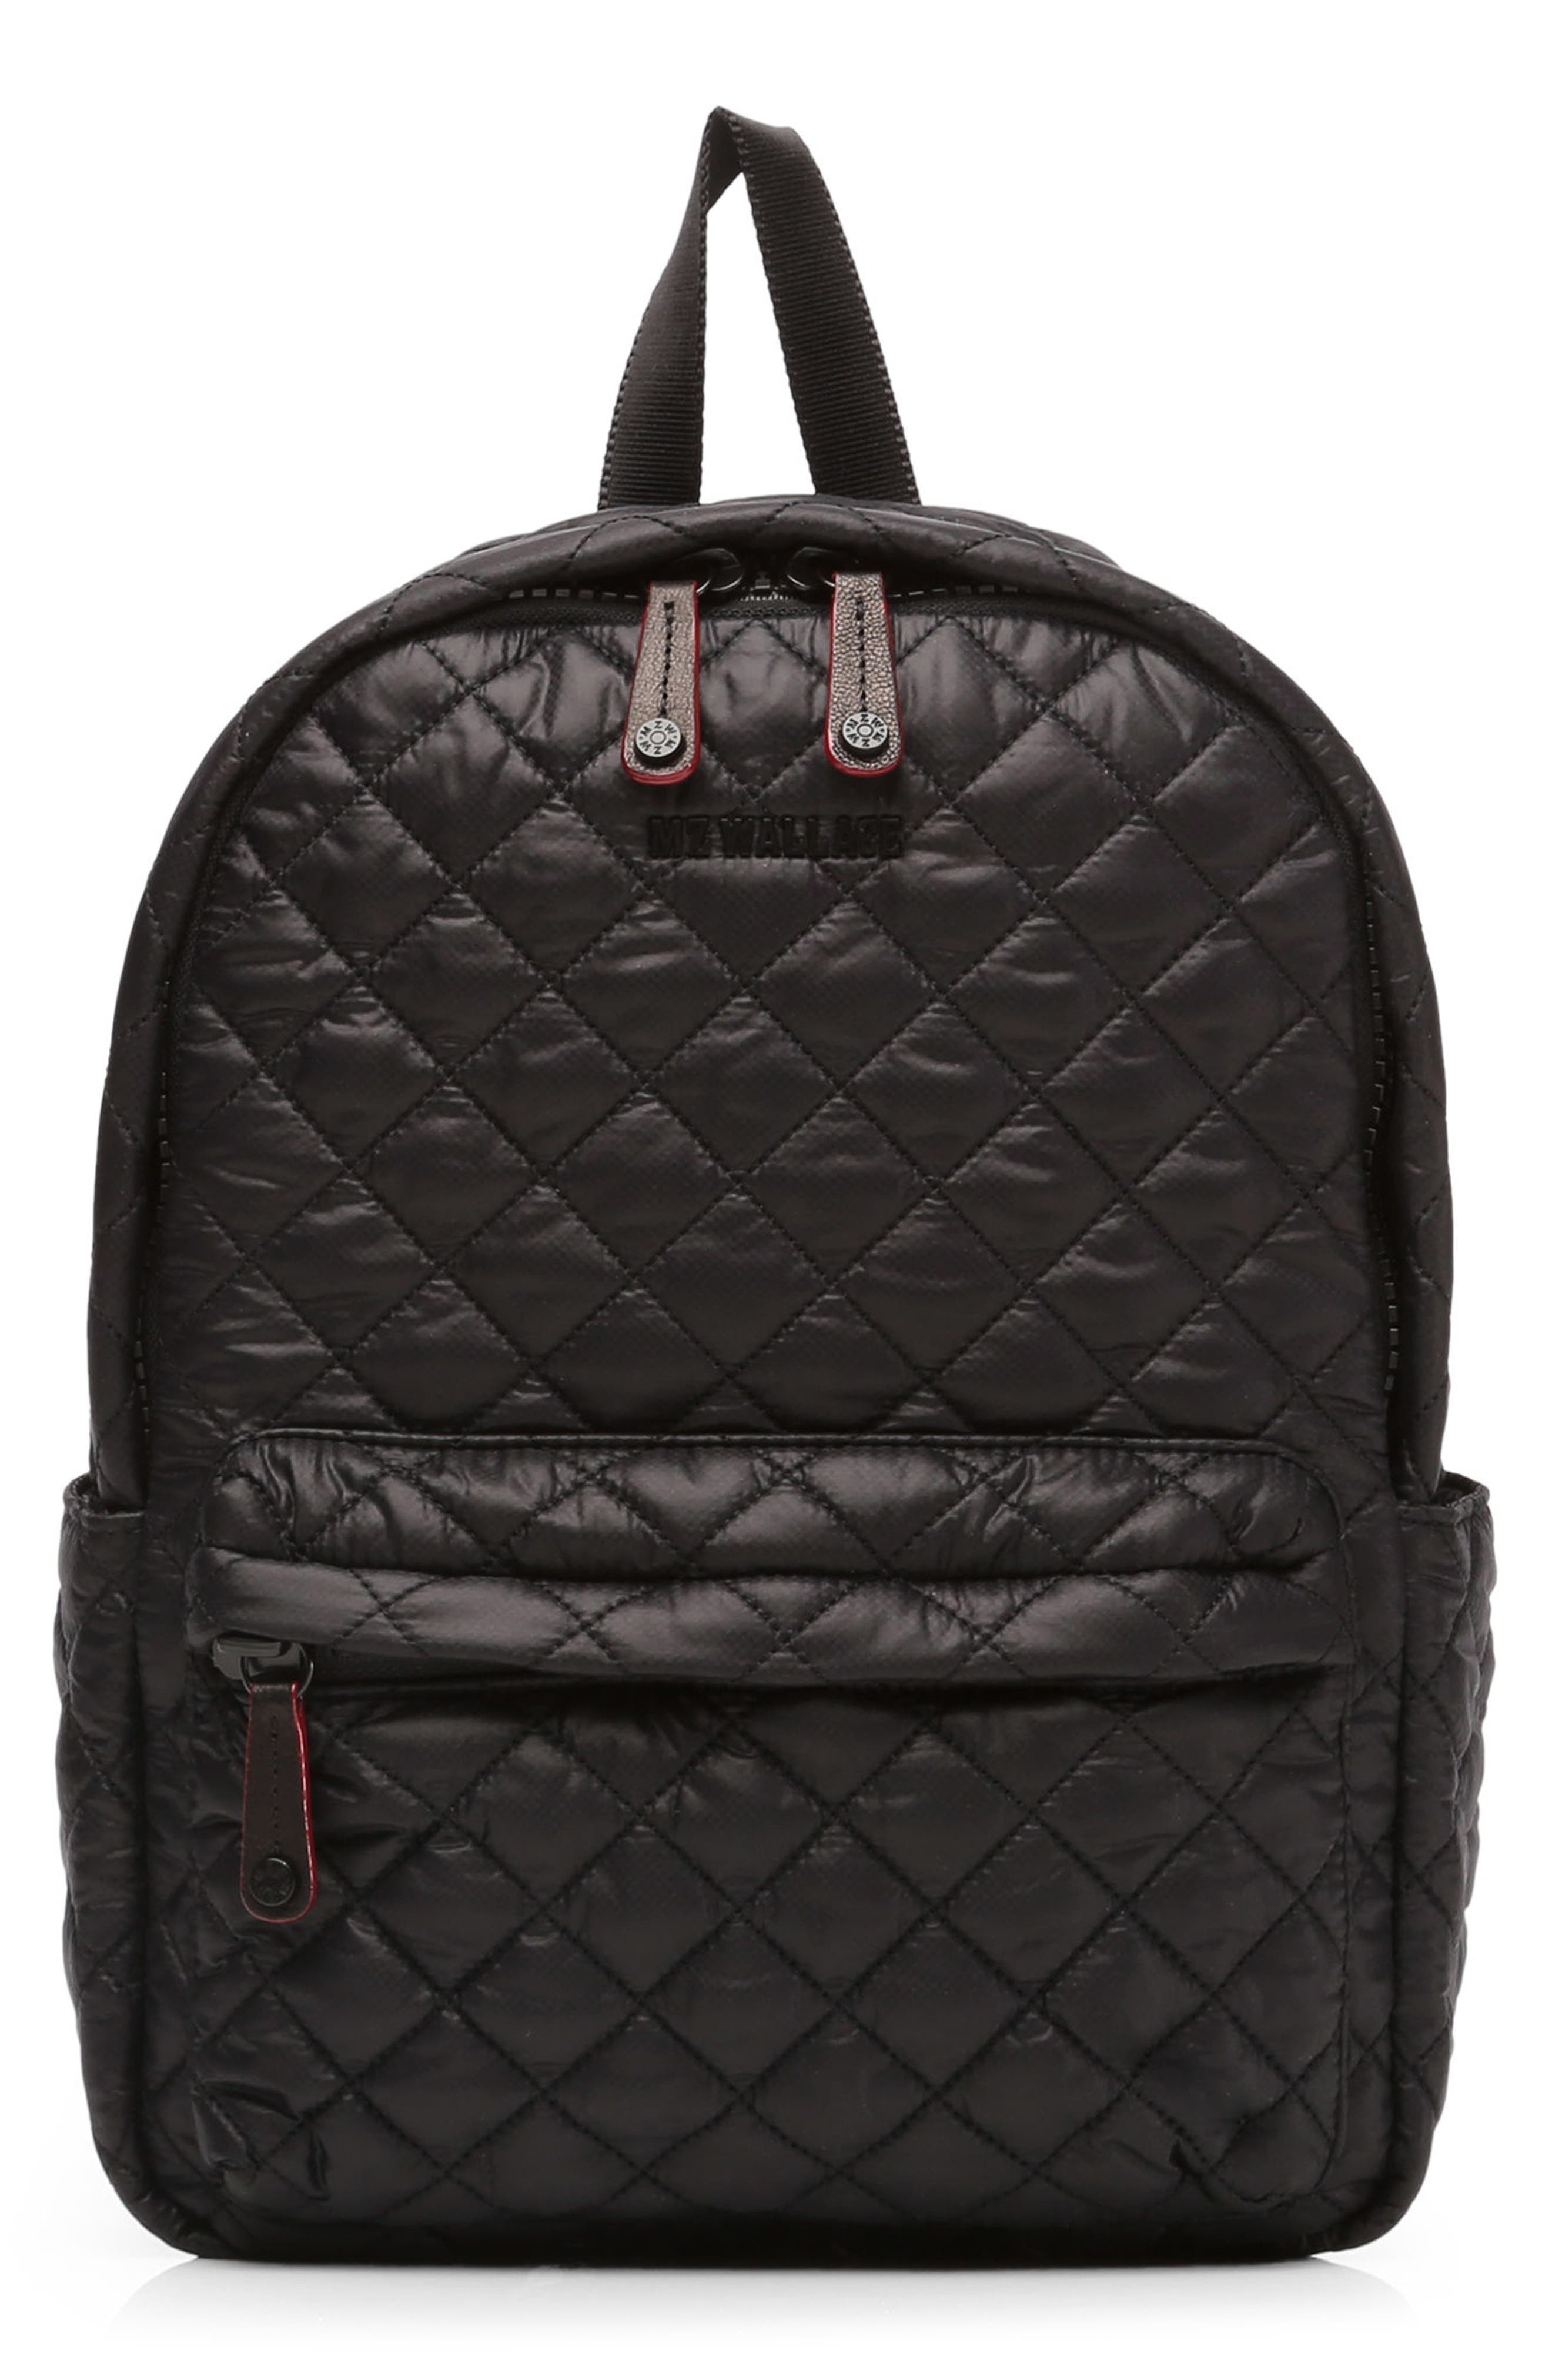 MZ WALLACE Small Metro Quilted Oxford Nylon Backpack